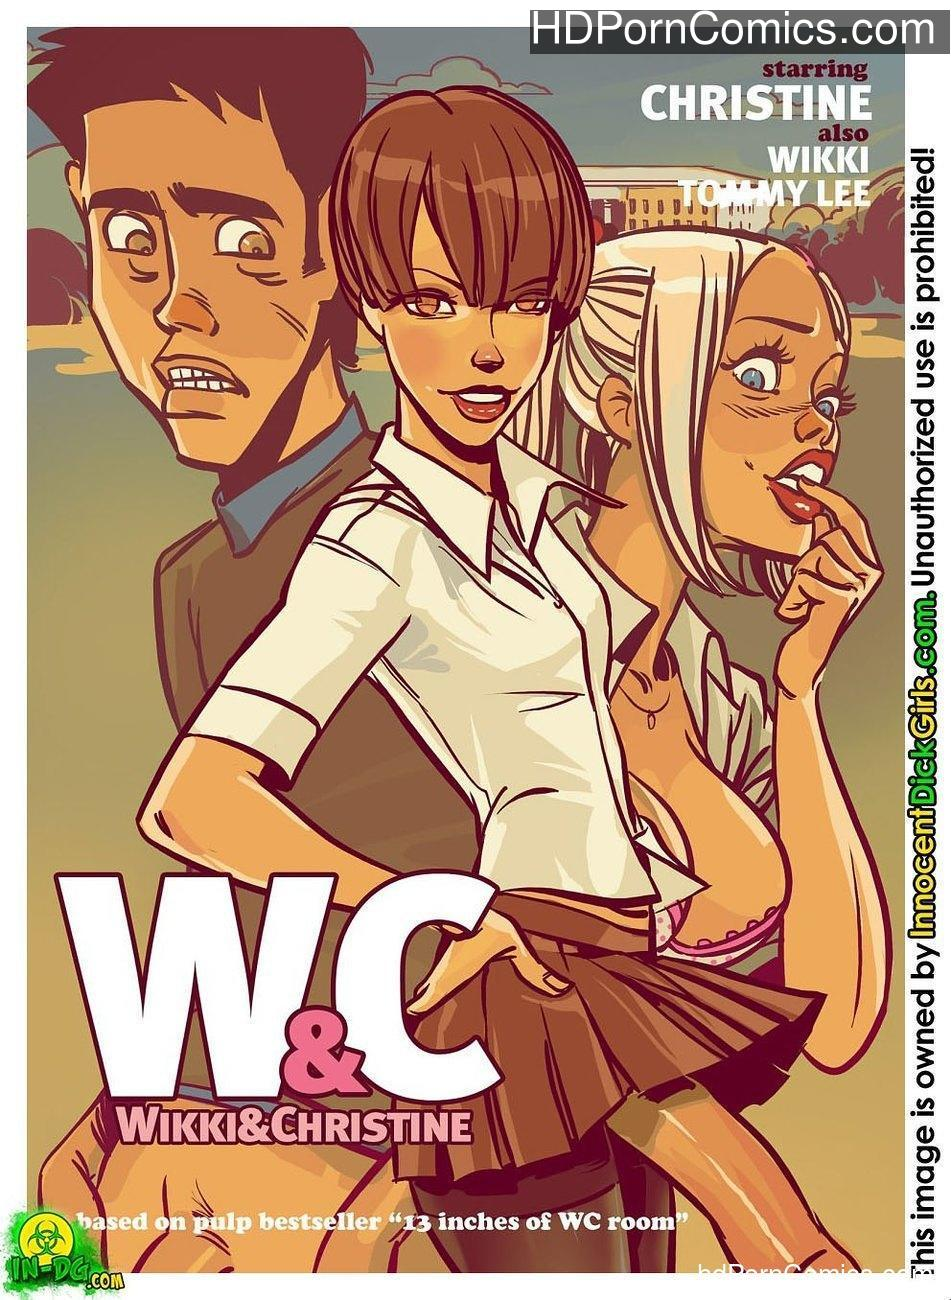 Wikki & Christine Sex Comic - HD Porn Comics